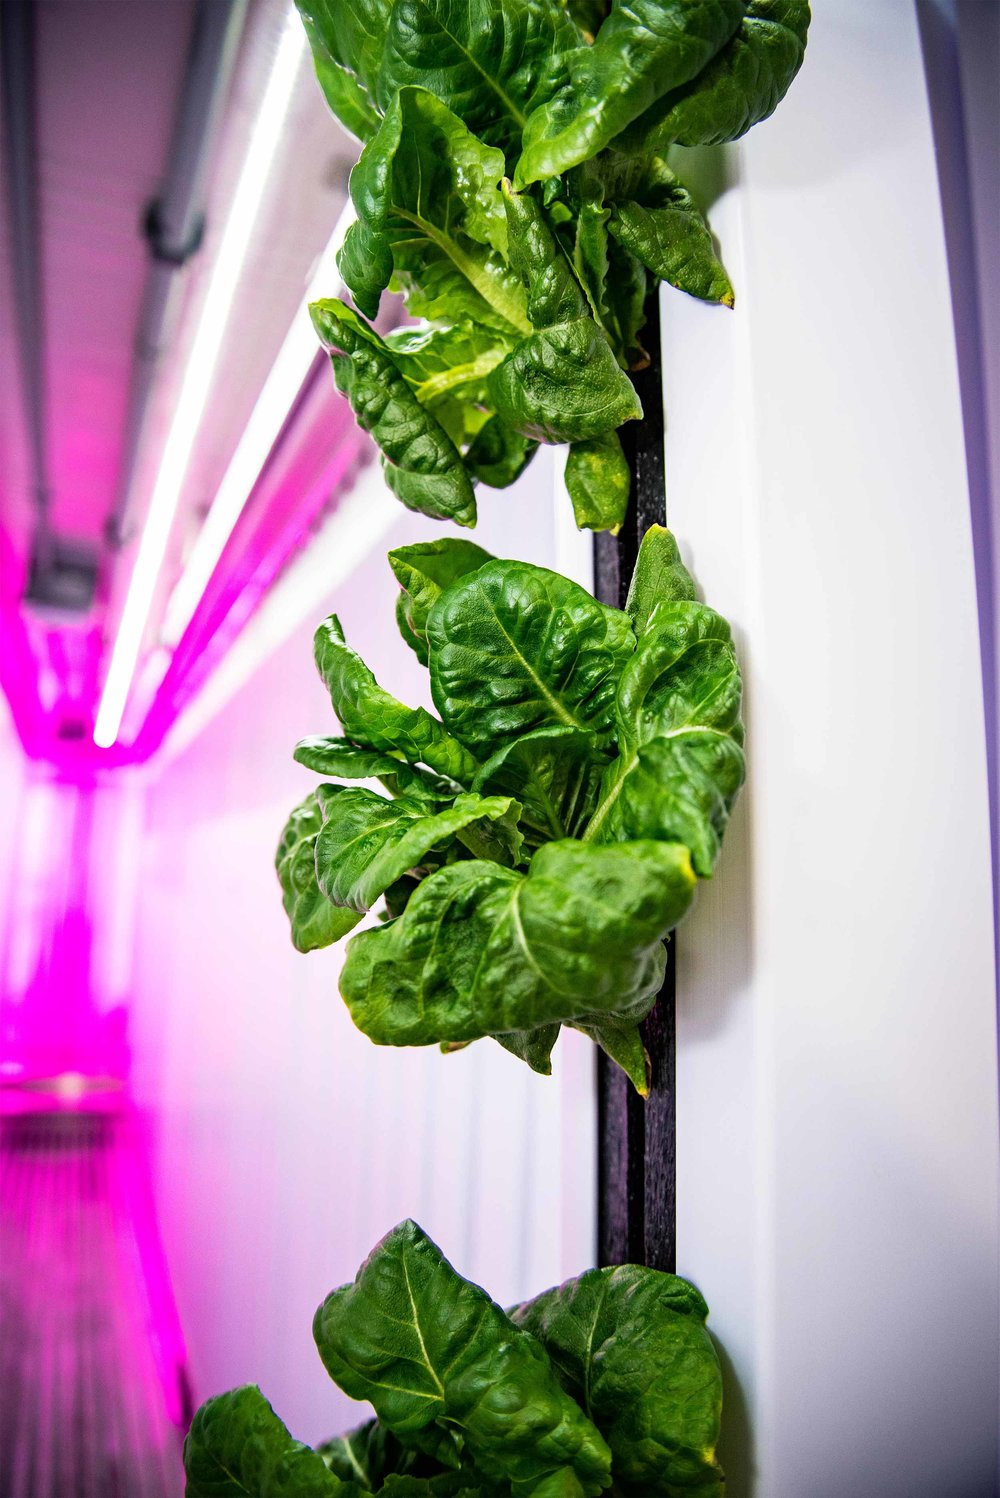 Bibb lettuce before harvest. The plants get 18 hours of sunlight-mimicking red and blue light, nutrient rich water, and ideal growing conditions. As a result, plants grow quickly and 95% of each harvest is ready to go to market.